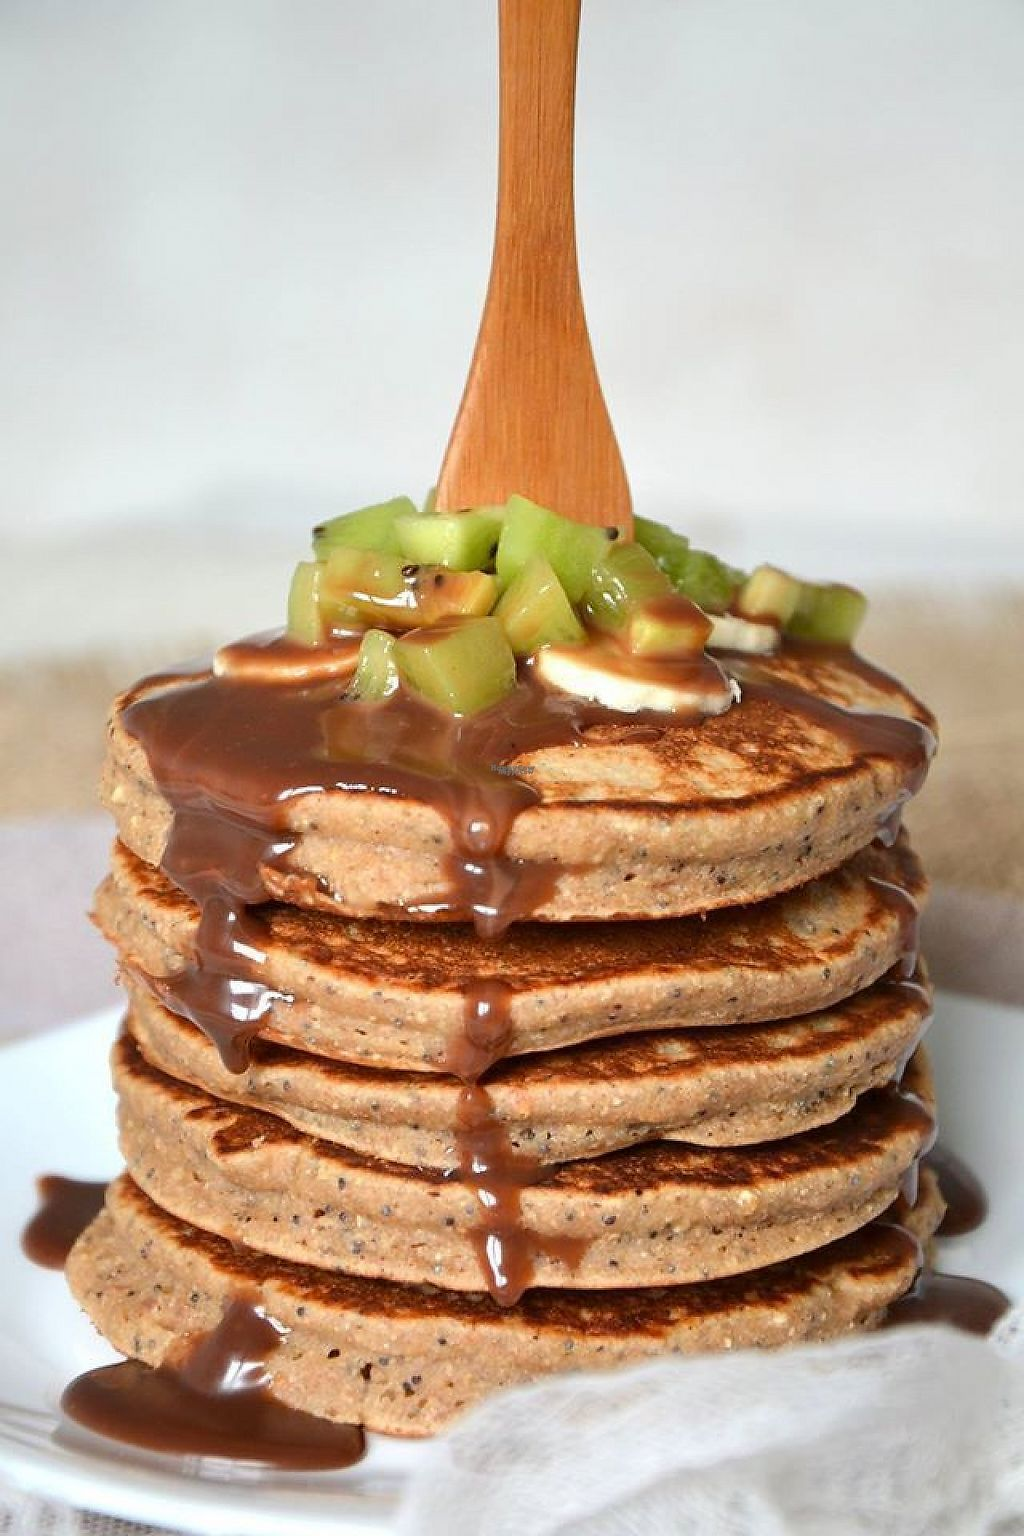 """Photo of La Vie Claire  by <a href=""""/members/profile/community"""">community</a> <br/>vegan pancakes  <br/> February 4, 2017  - <a href='/contact/abuse/image/72048/221903'>Report</a>"""